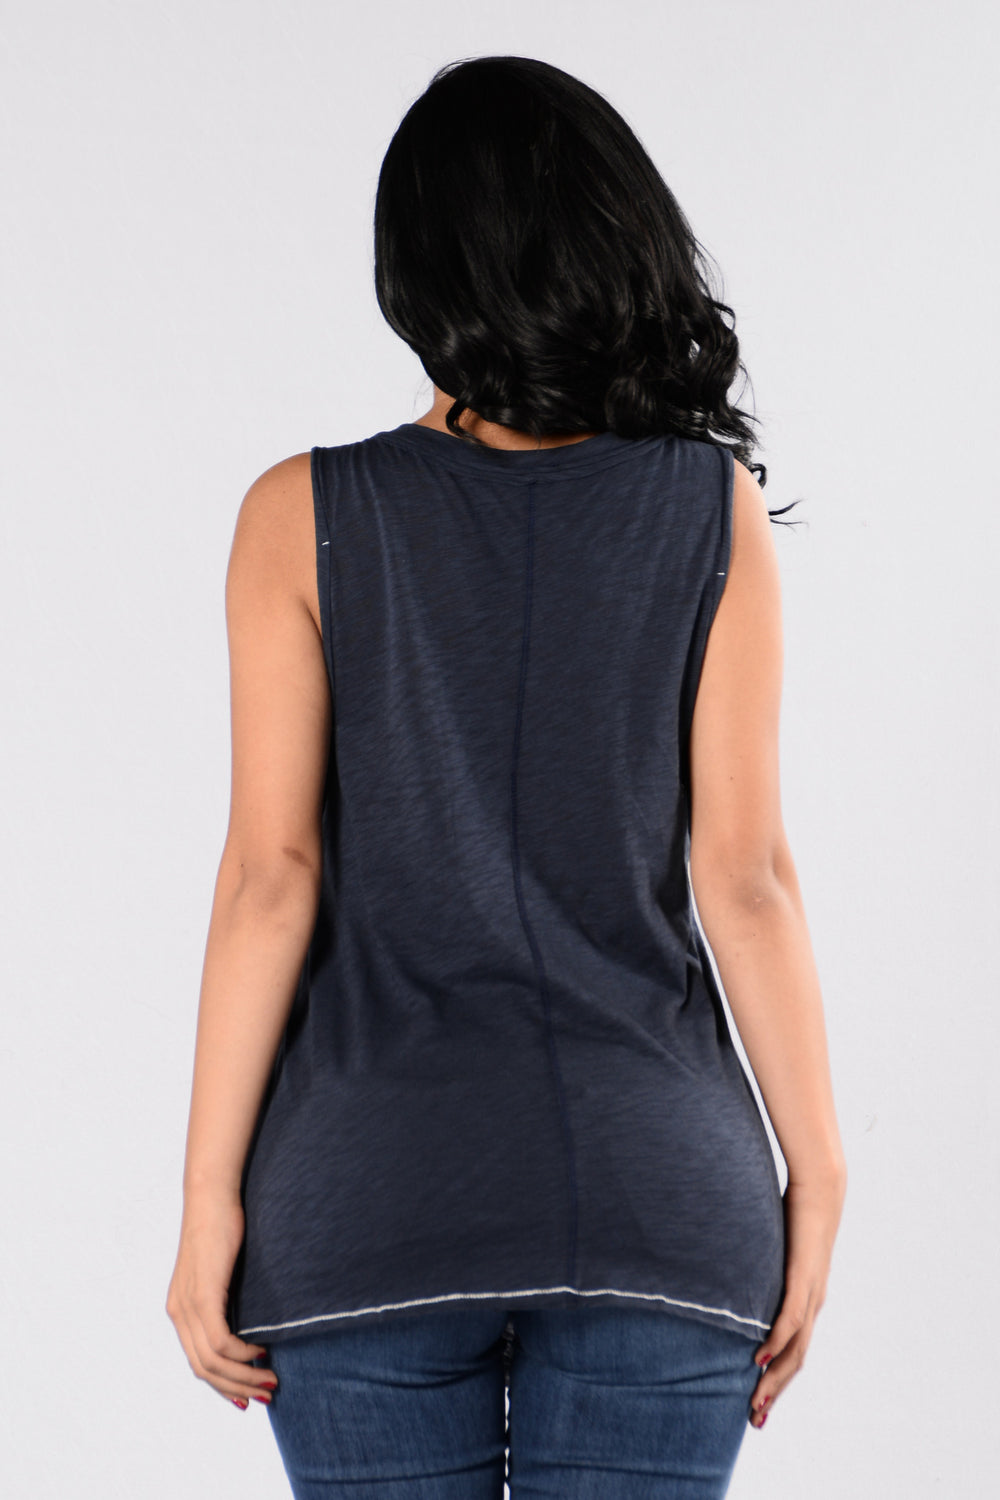 Take It To the Limit Tank - Navy